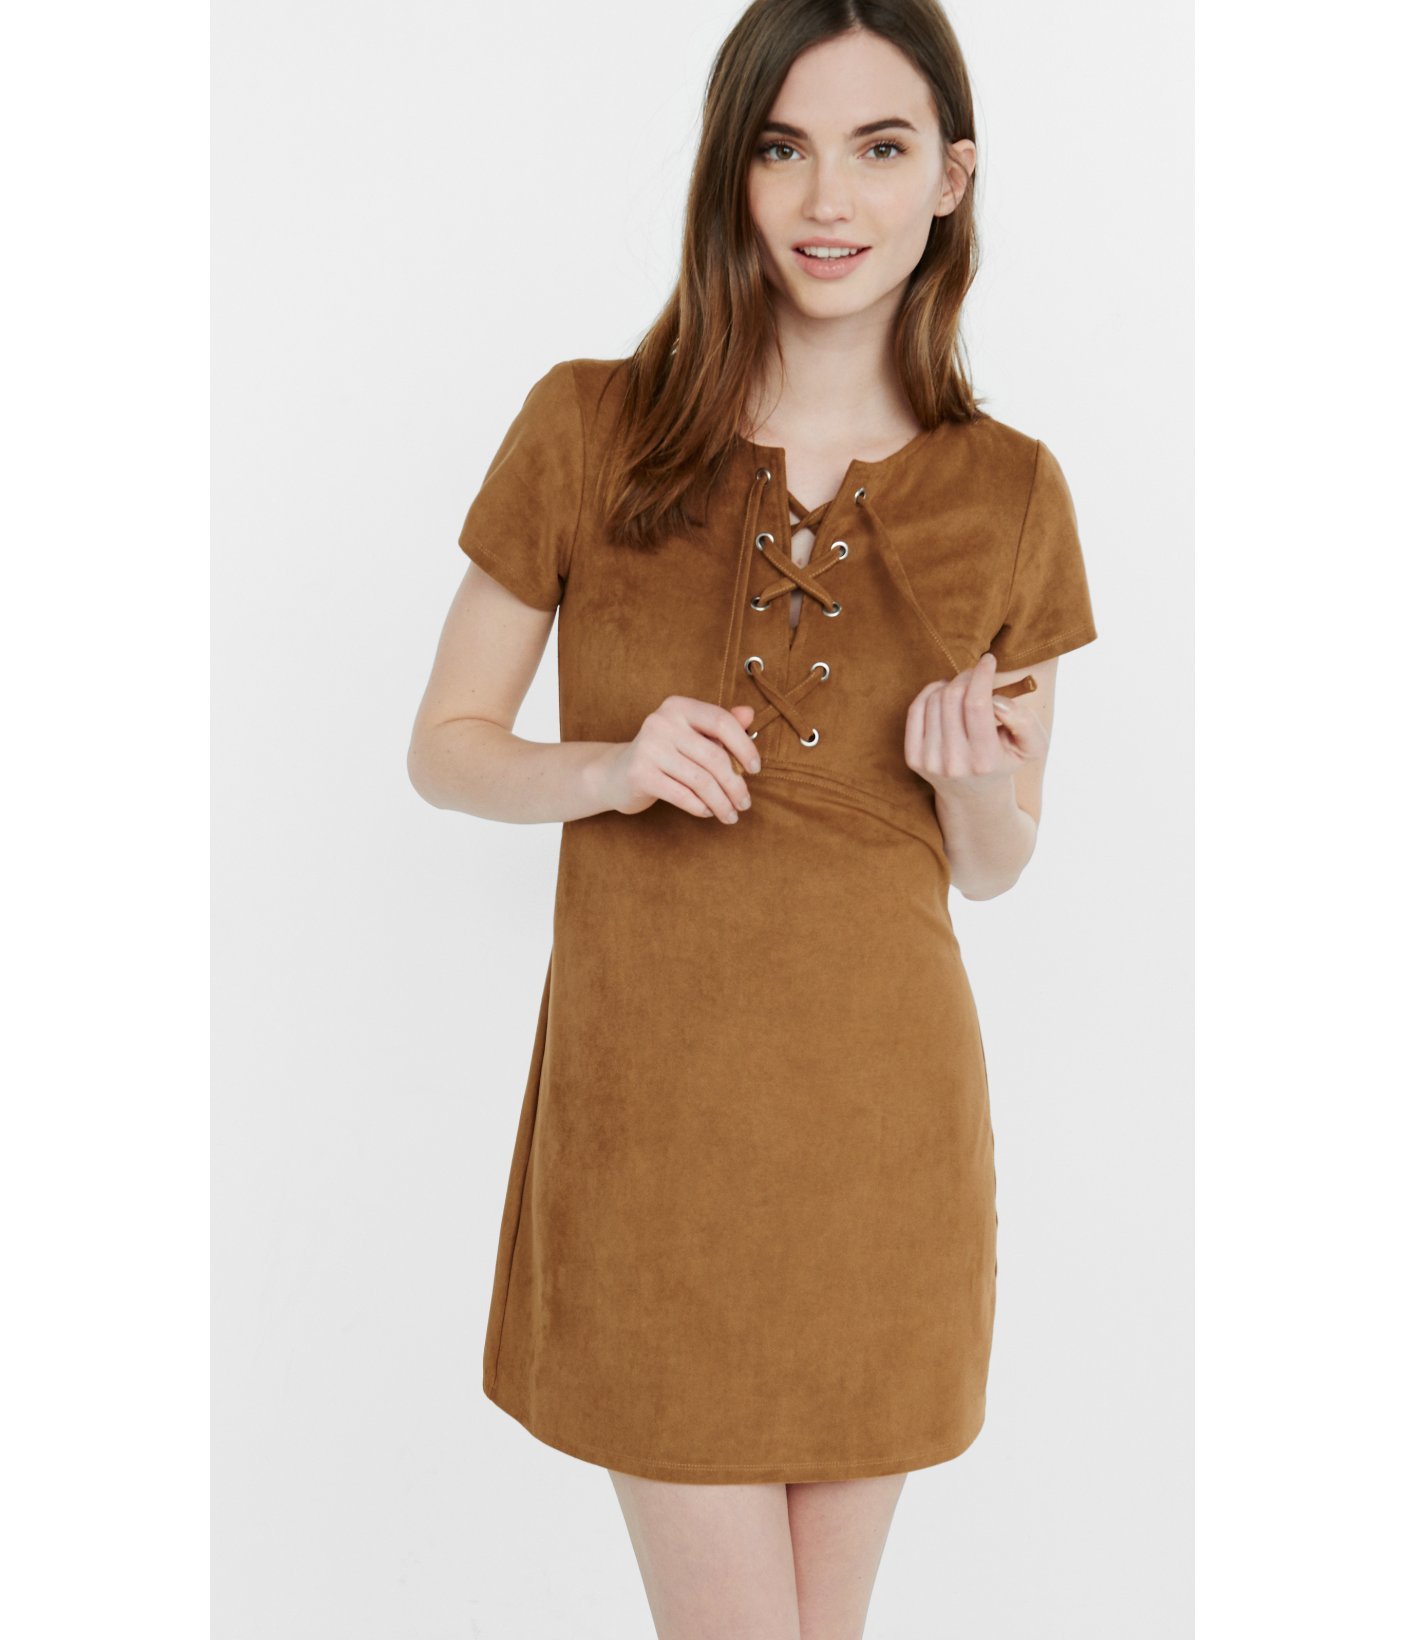 Buy Lace brown dresses picture trends